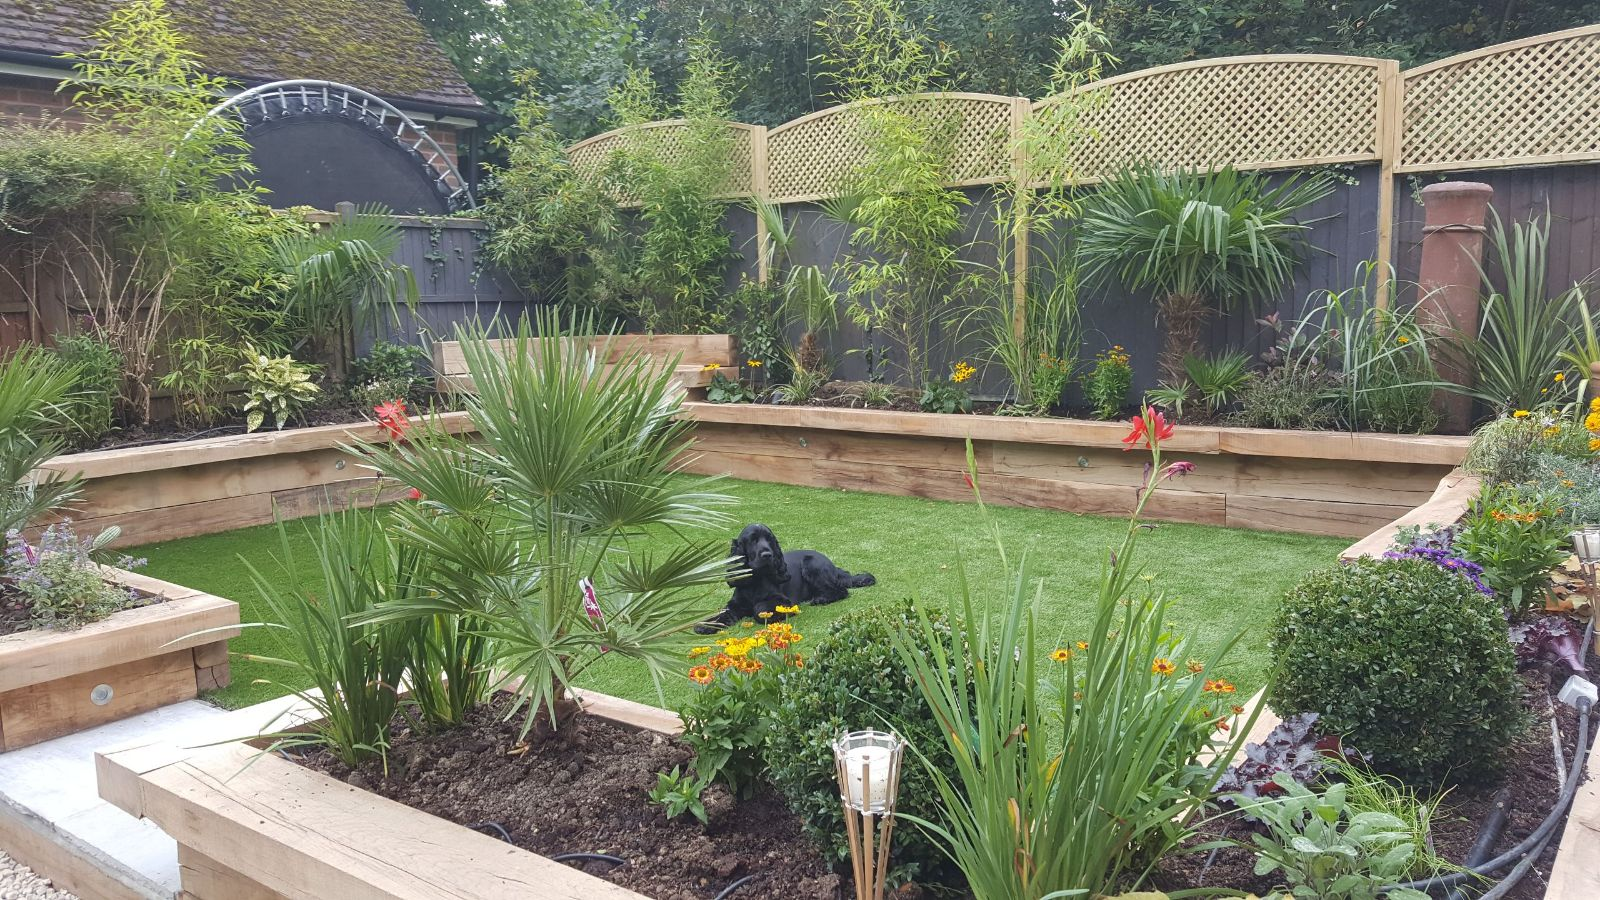 a dog loving his new garden with artificial grass